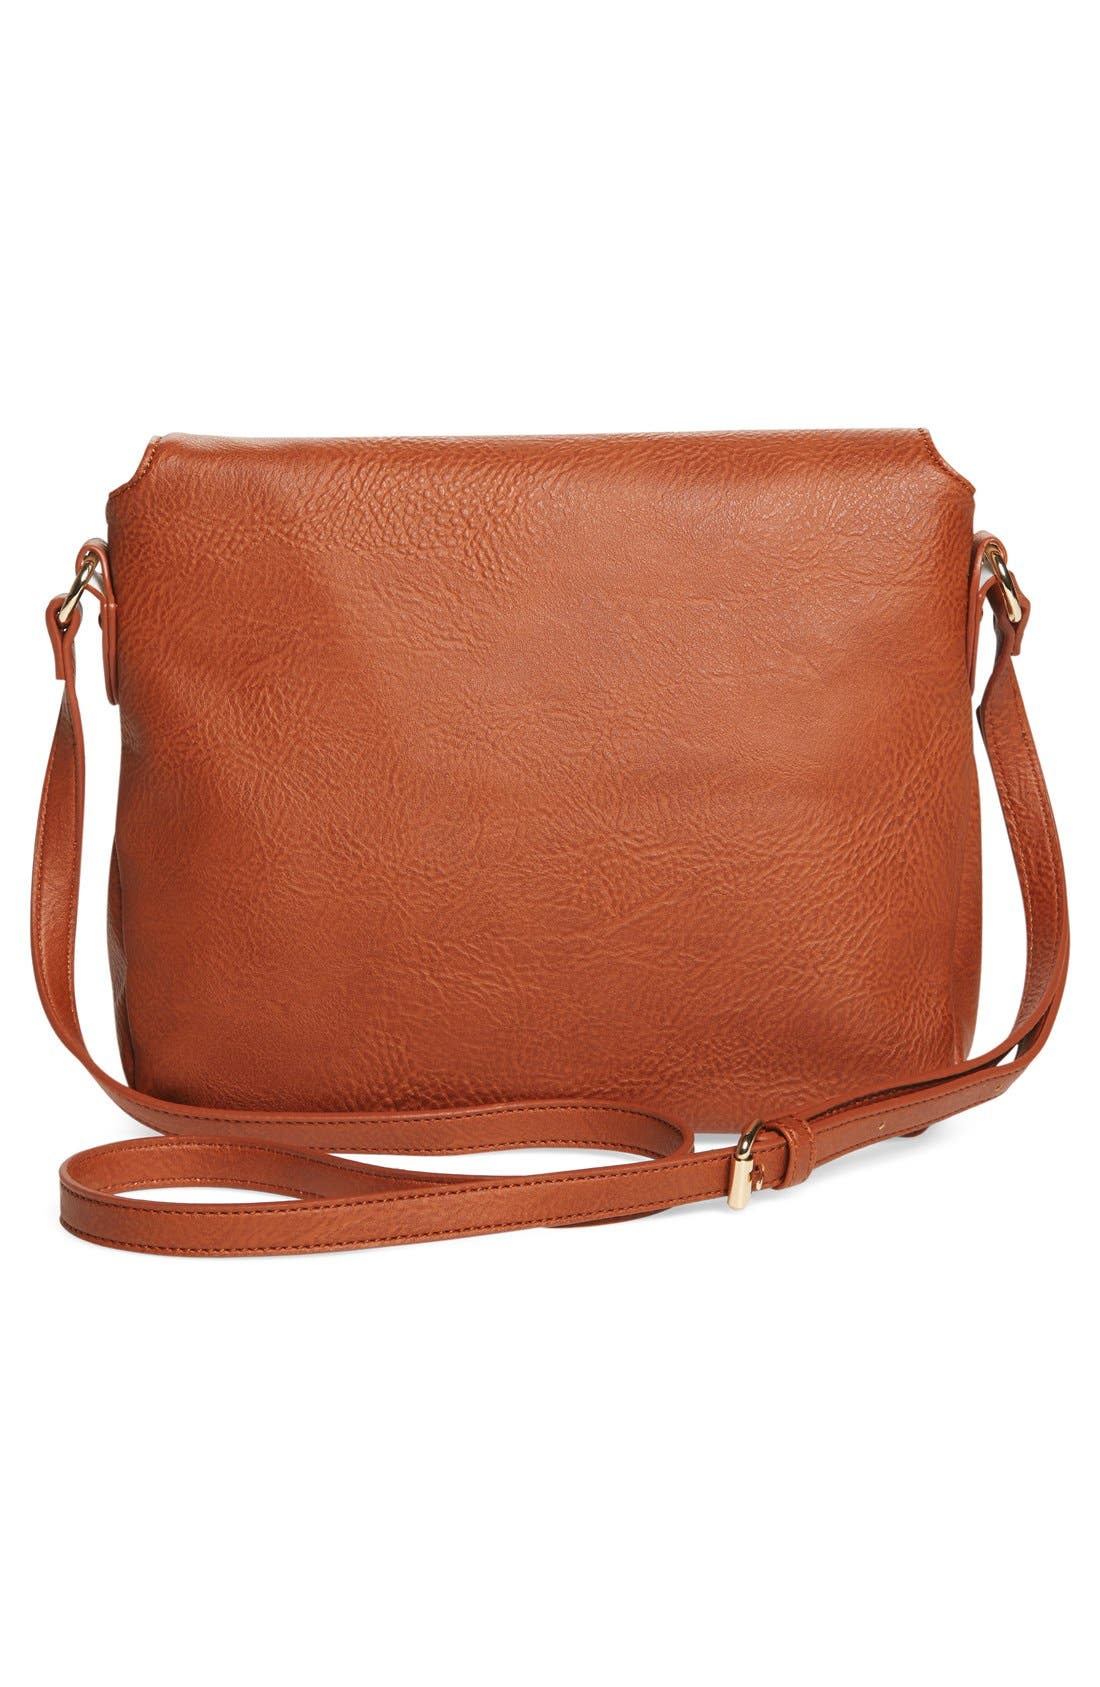 Alternate Image 3  - BP. Zip Flap Faux Leather Crossbody Bag